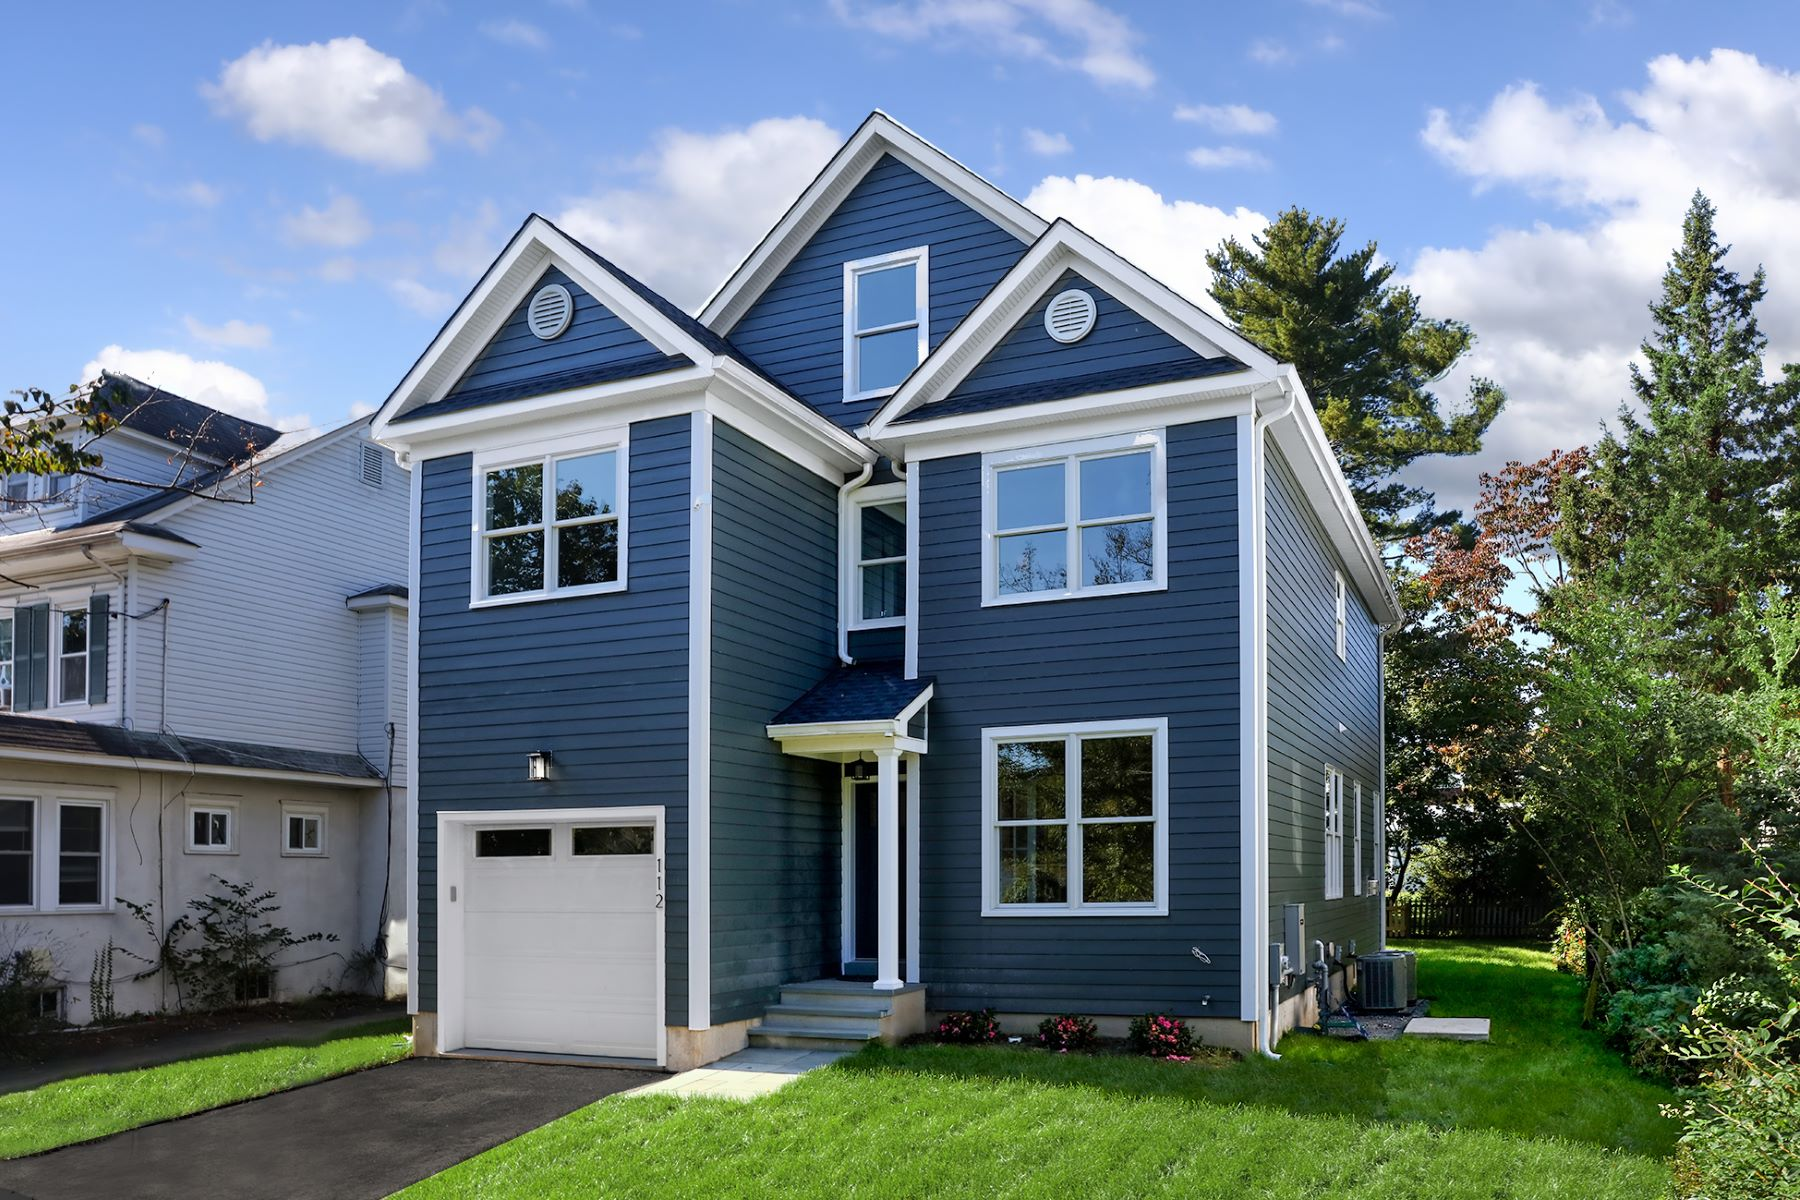 Property for Sale at New Construction On A Tree Street! 112 Linden Lane, Princeton, New Jersey 08540 United States